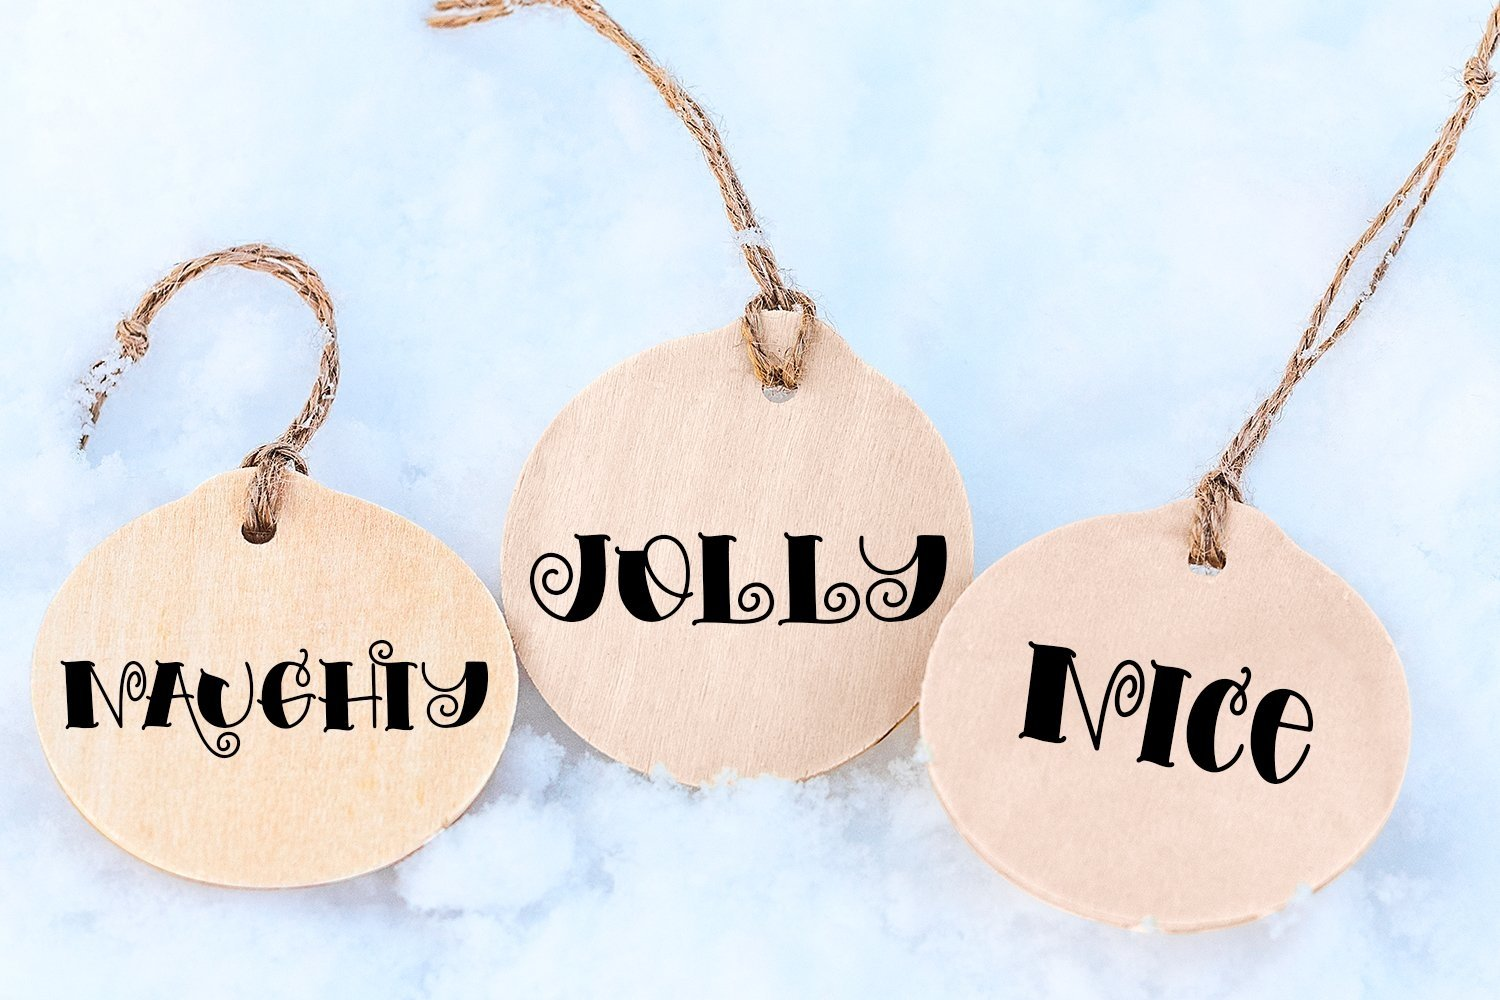 Web Font Snowy Mornings - A Hand-Lettered Christmas Font example image 3